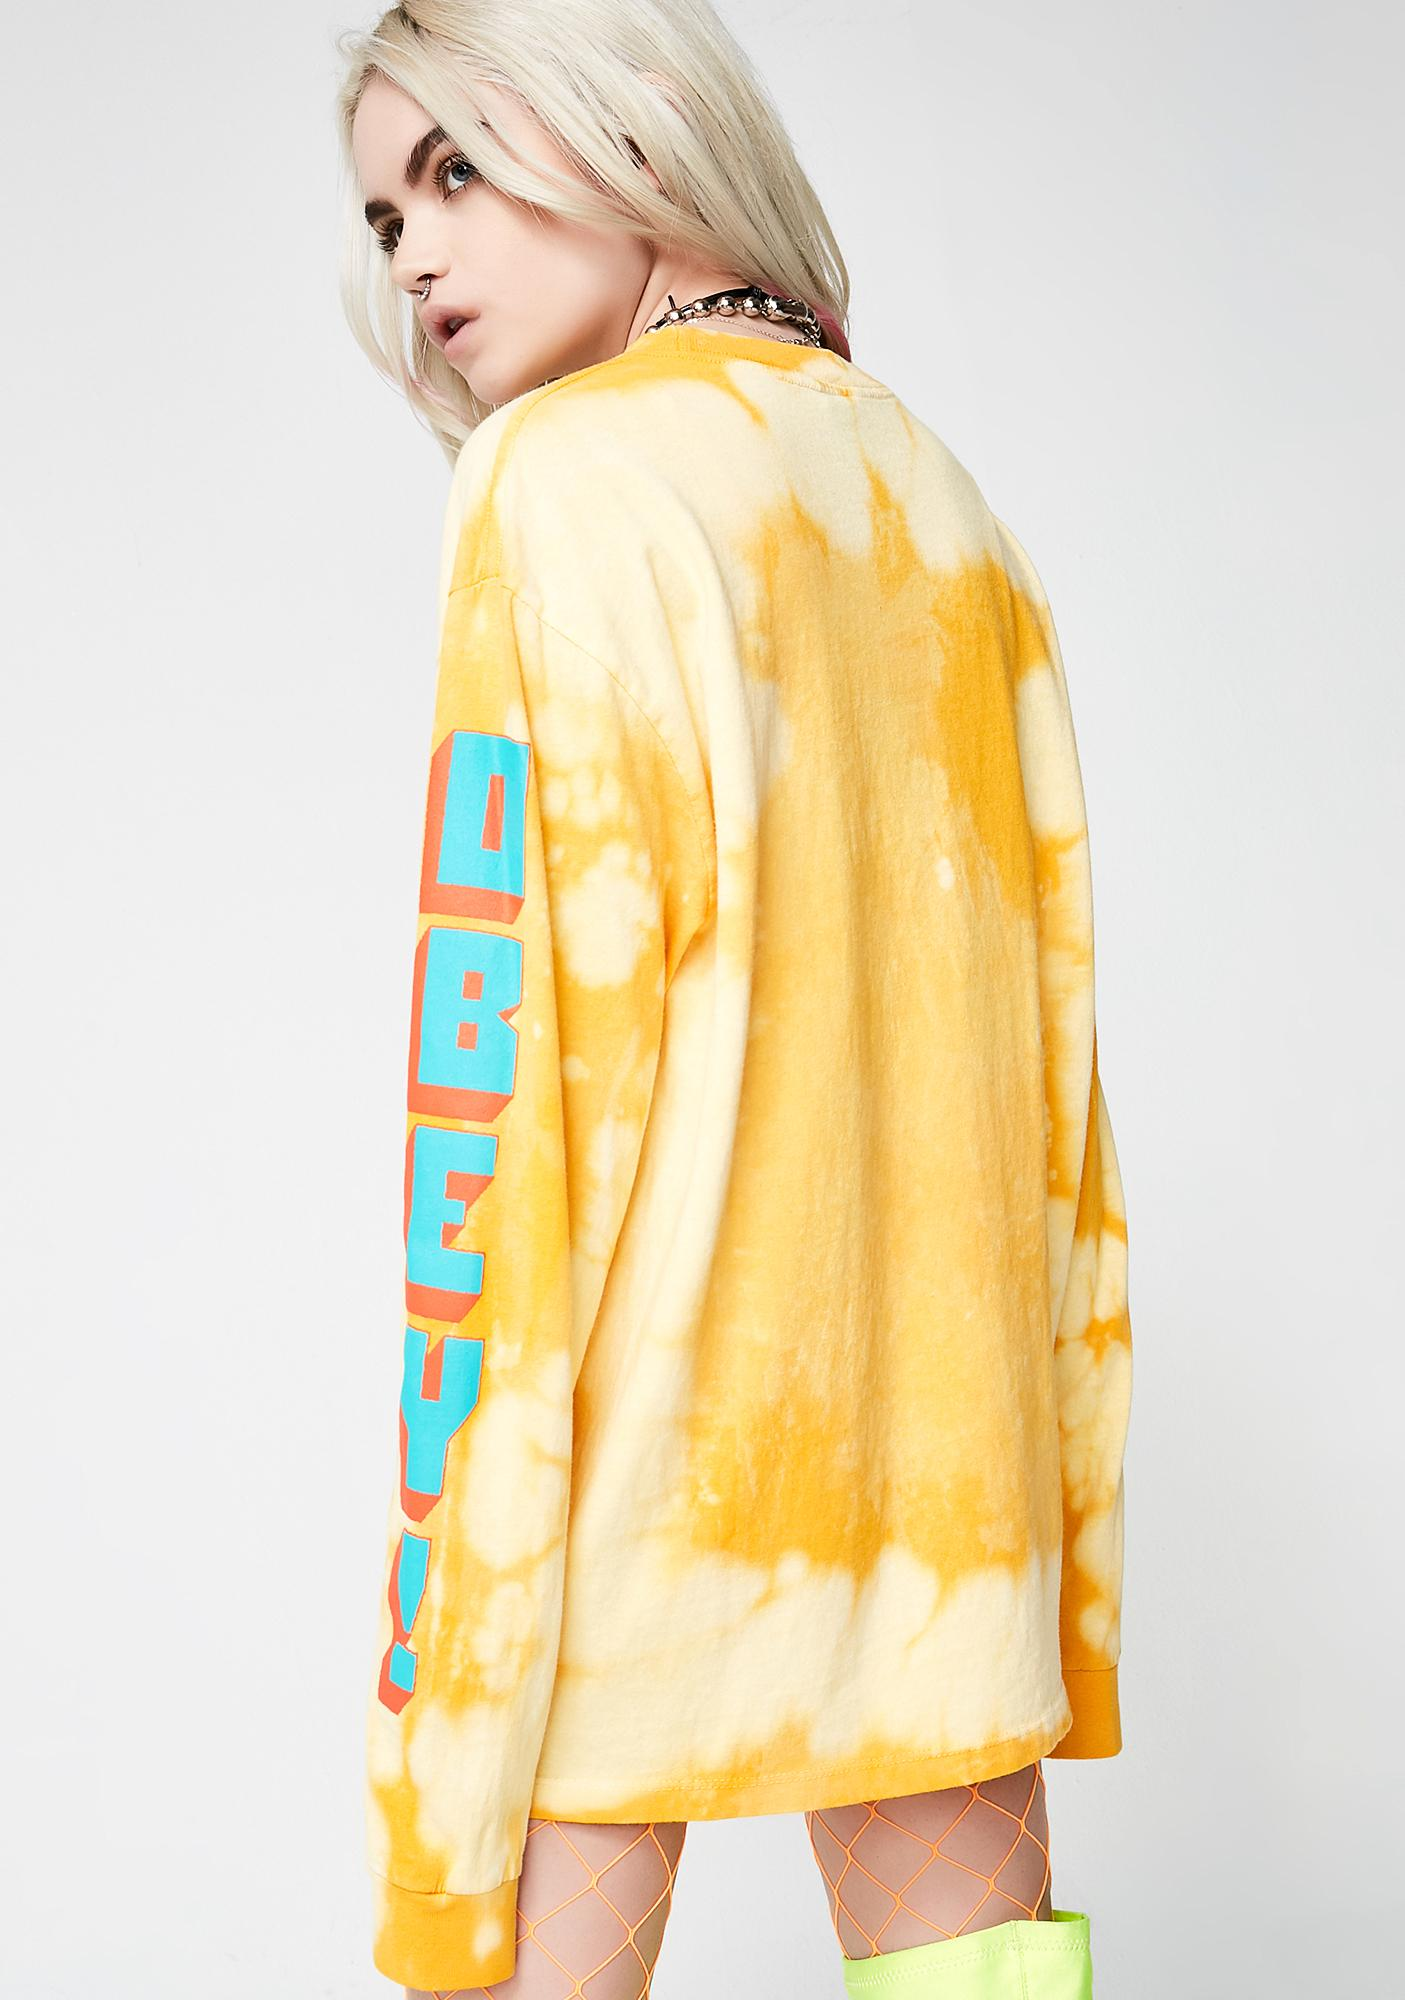 Obey New World 2 Long Sleeve